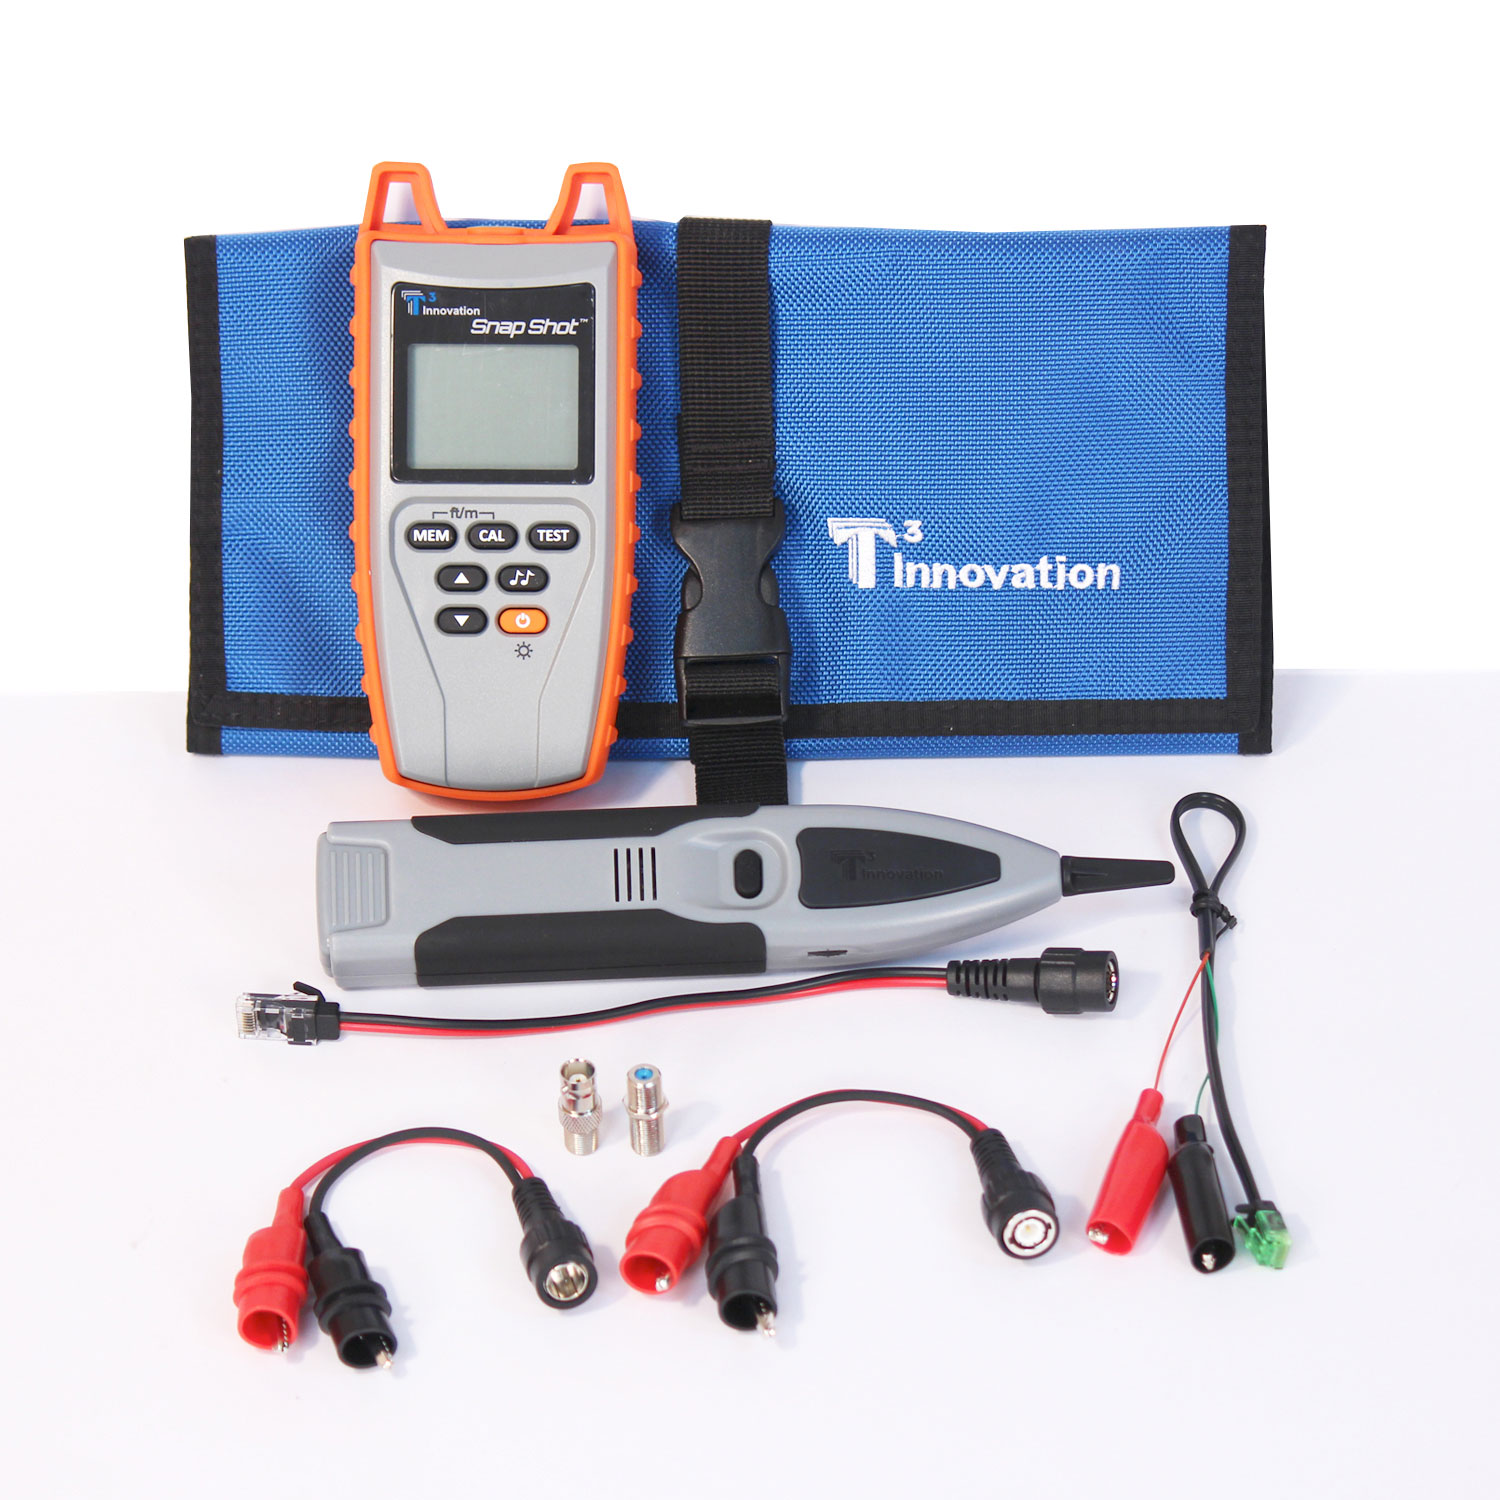 Fault Finder And Length Measurement Tdr Snap Shot T3 Innovation Electrical Continuity Tester Is A Device Which Measures Whether Ssk250